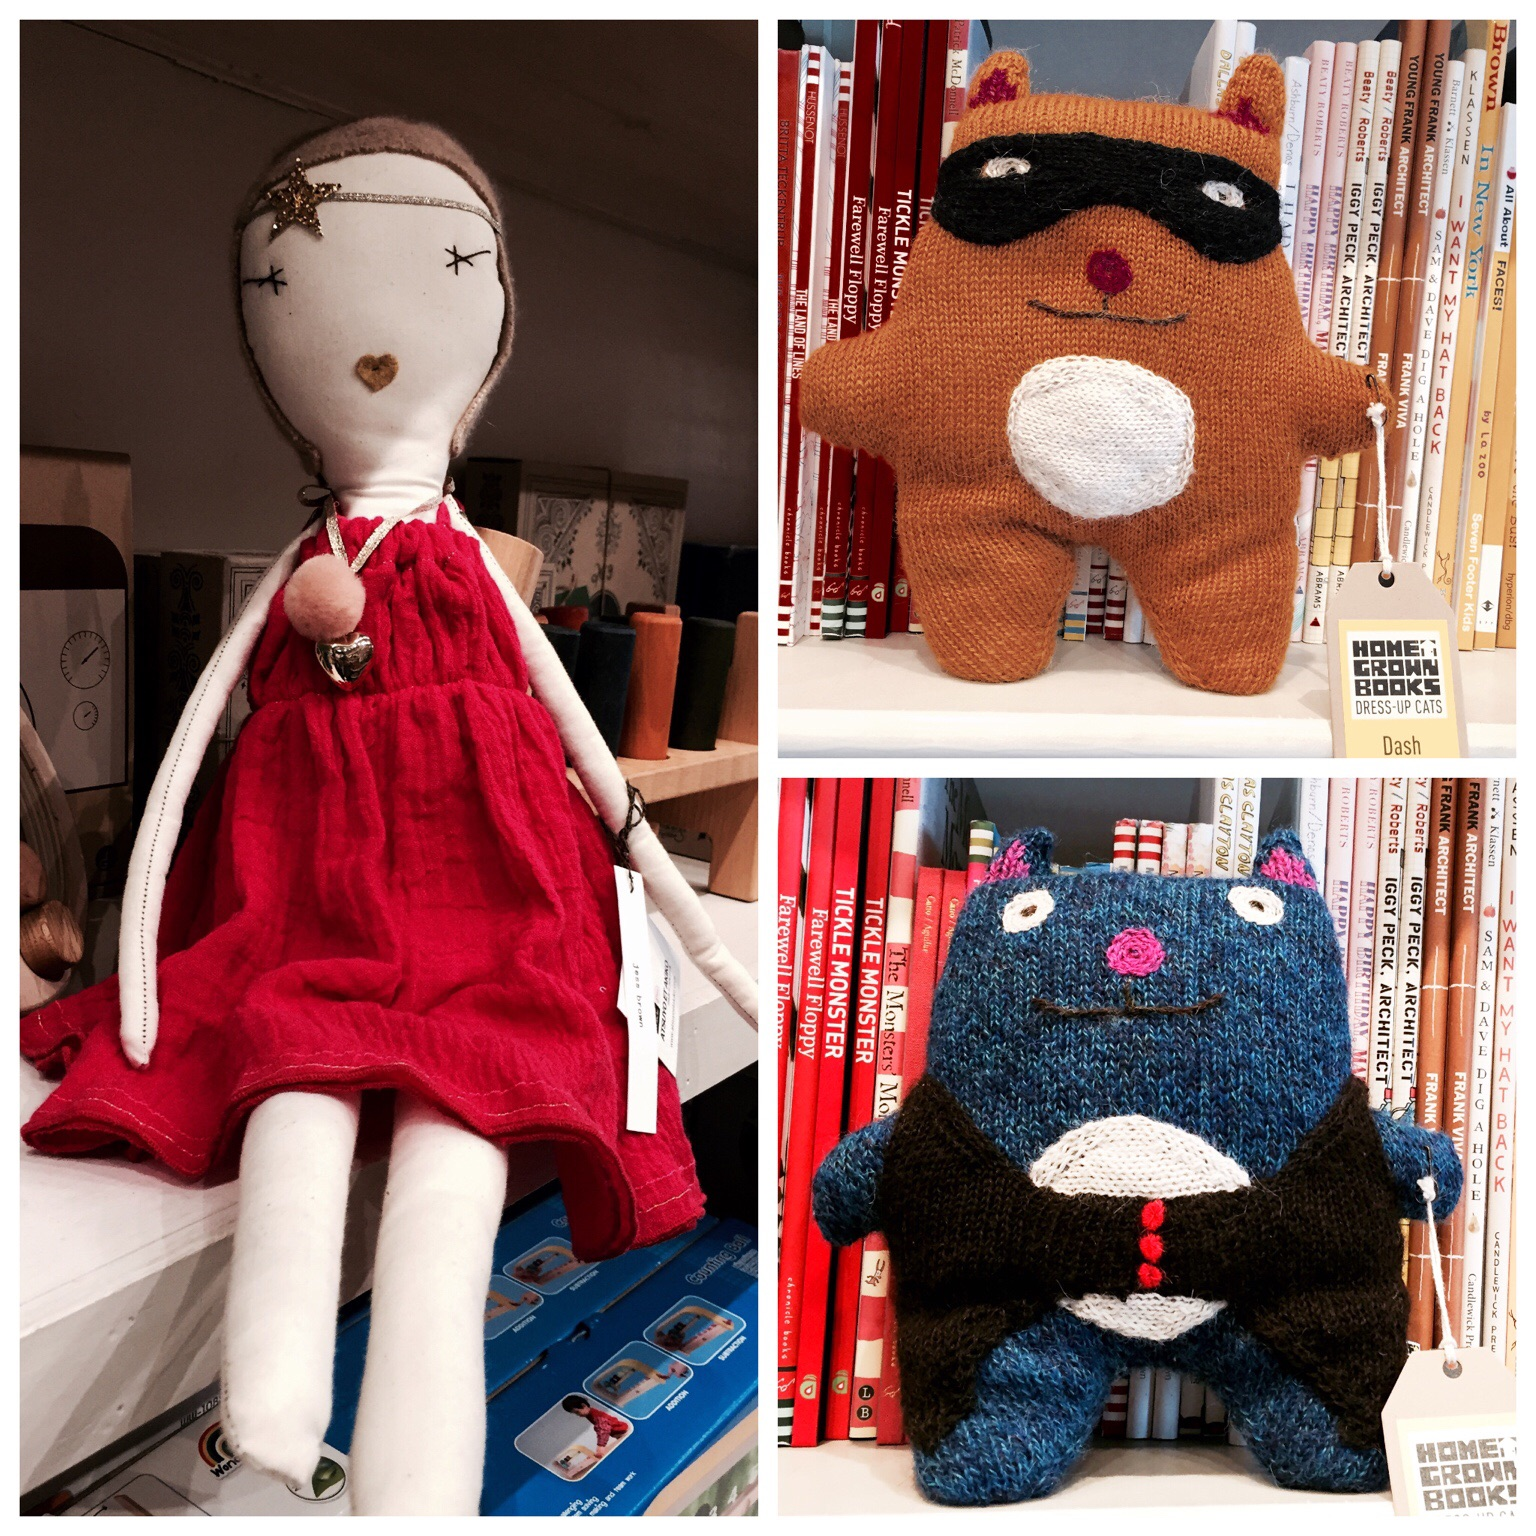 Jess Brown doll and Home Grown Books soft toys